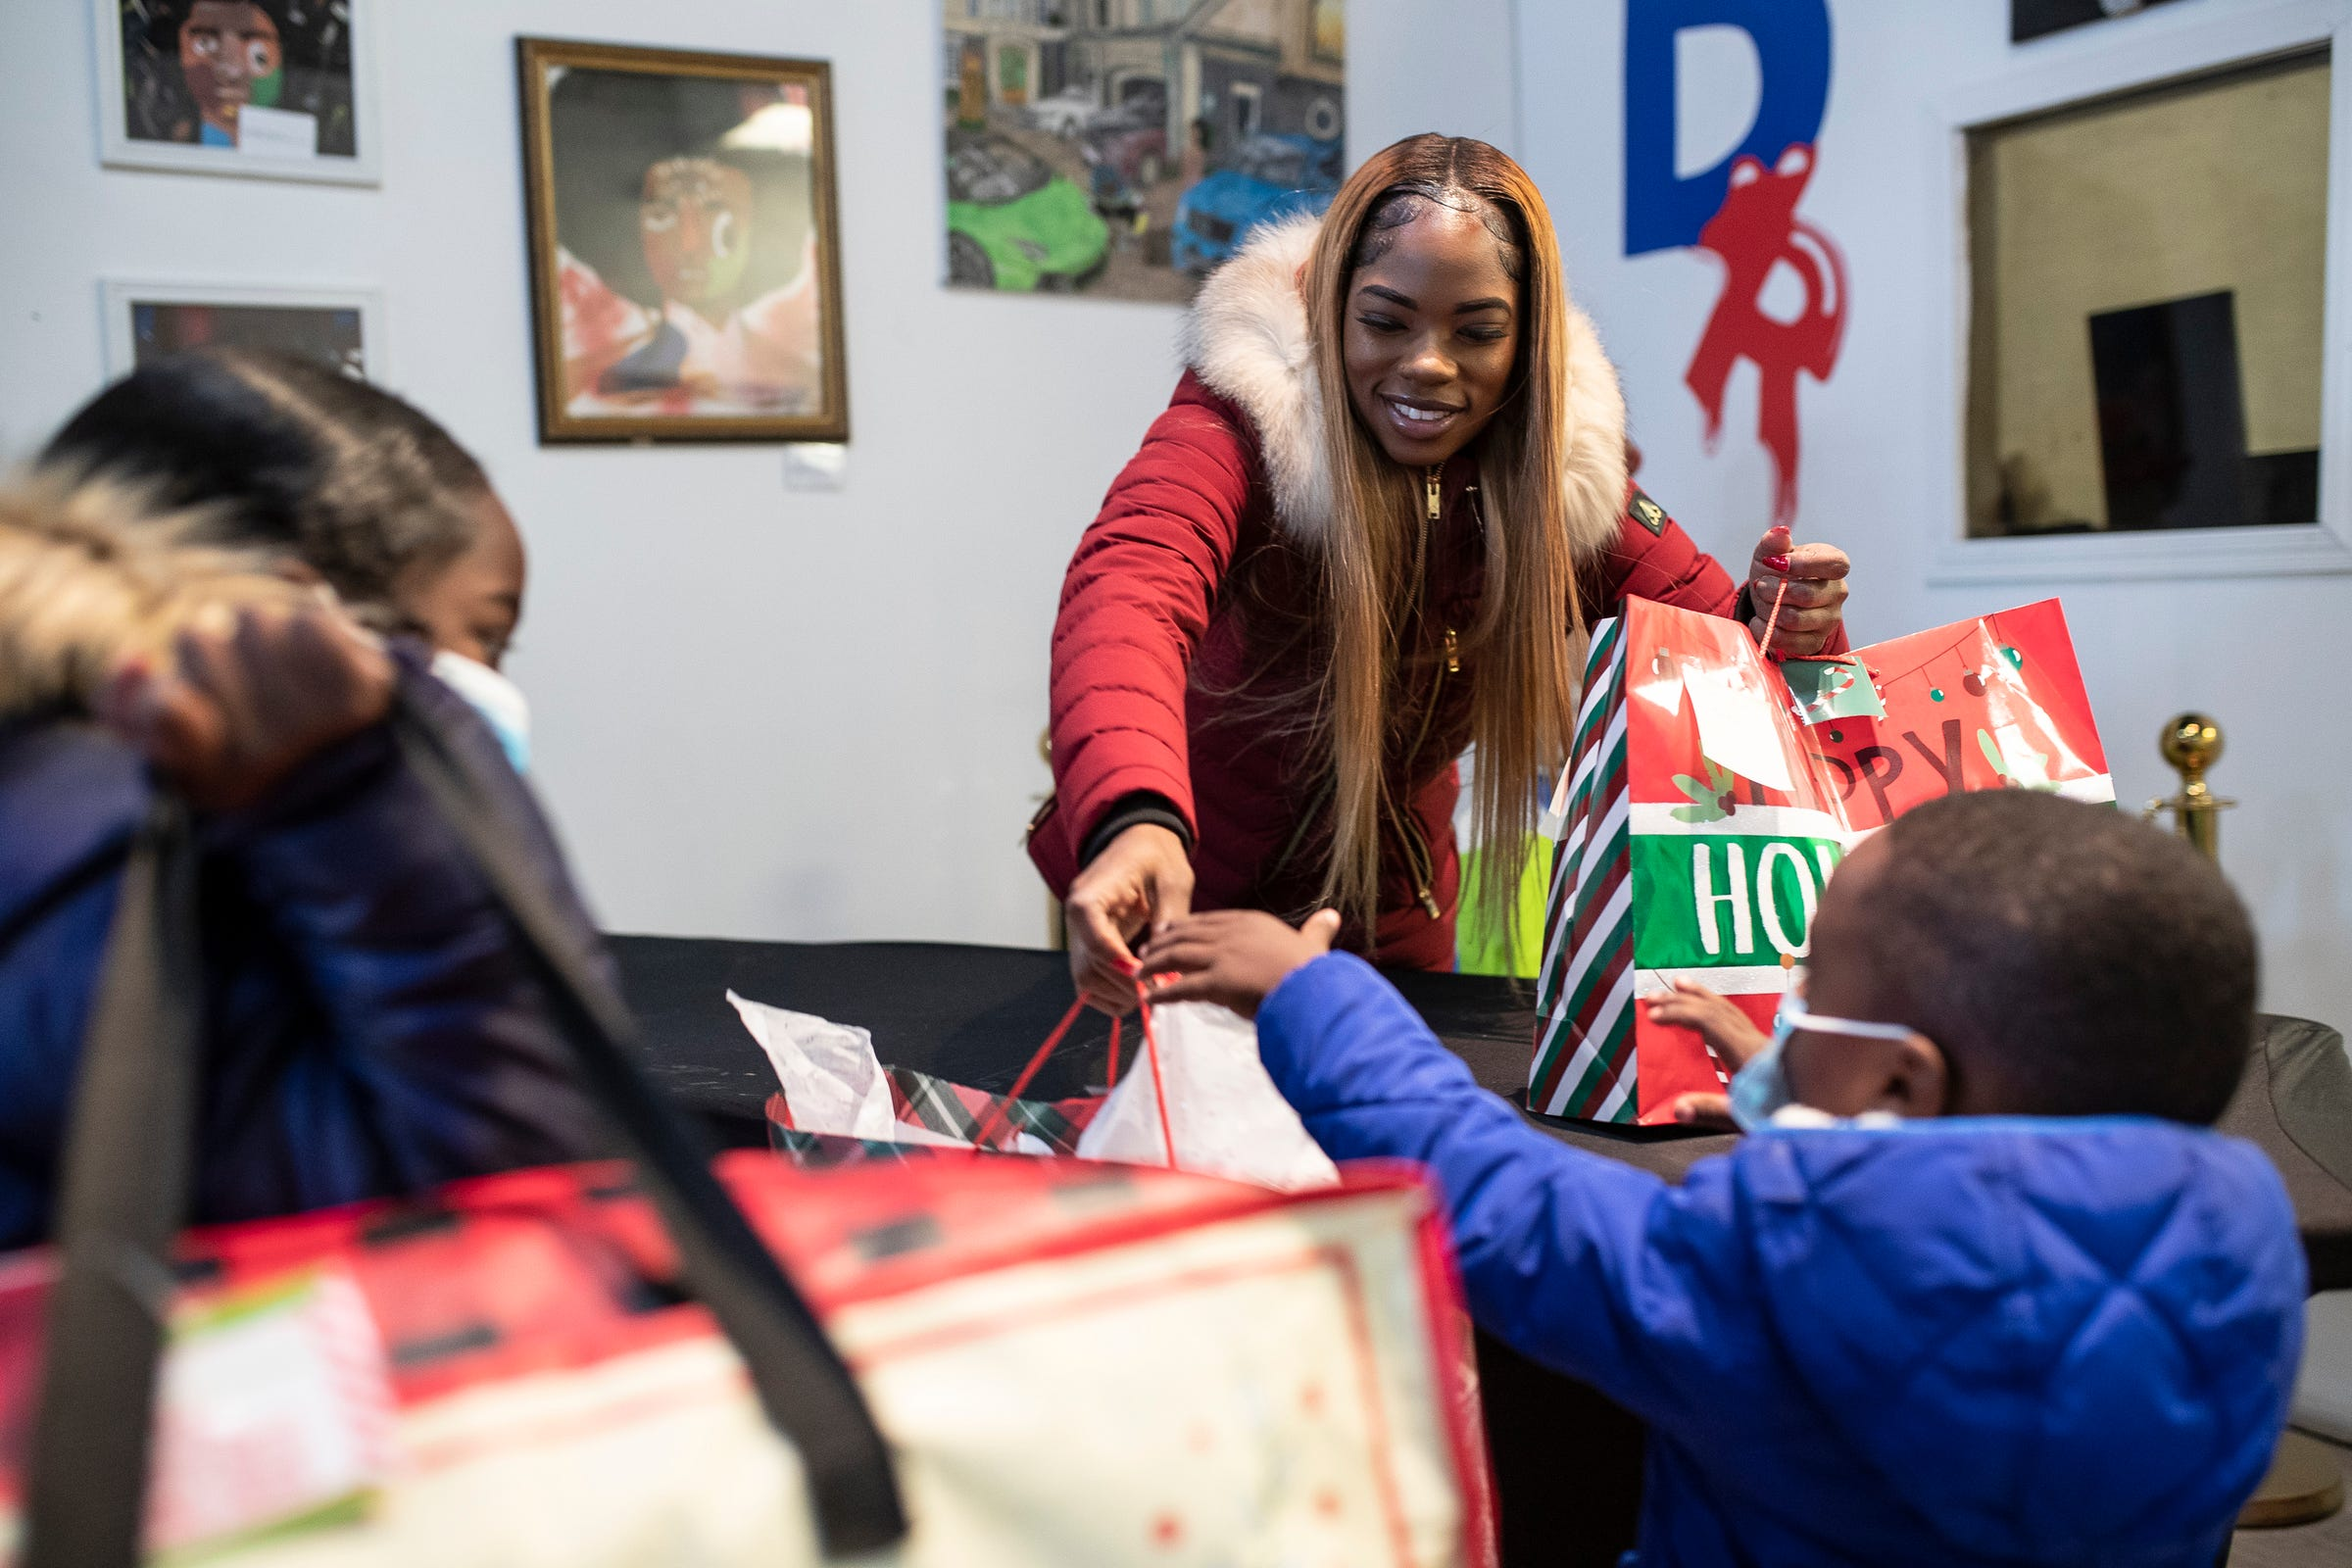 Tia Russell, founder of Take My Hand, hands gifts to Tyler Cowart, 4 and his sister Savannah Cowart, 6, both of Ecorse at Dream Rich Art Museum in Detroit on Tuesday, Dec. 22, 2020.